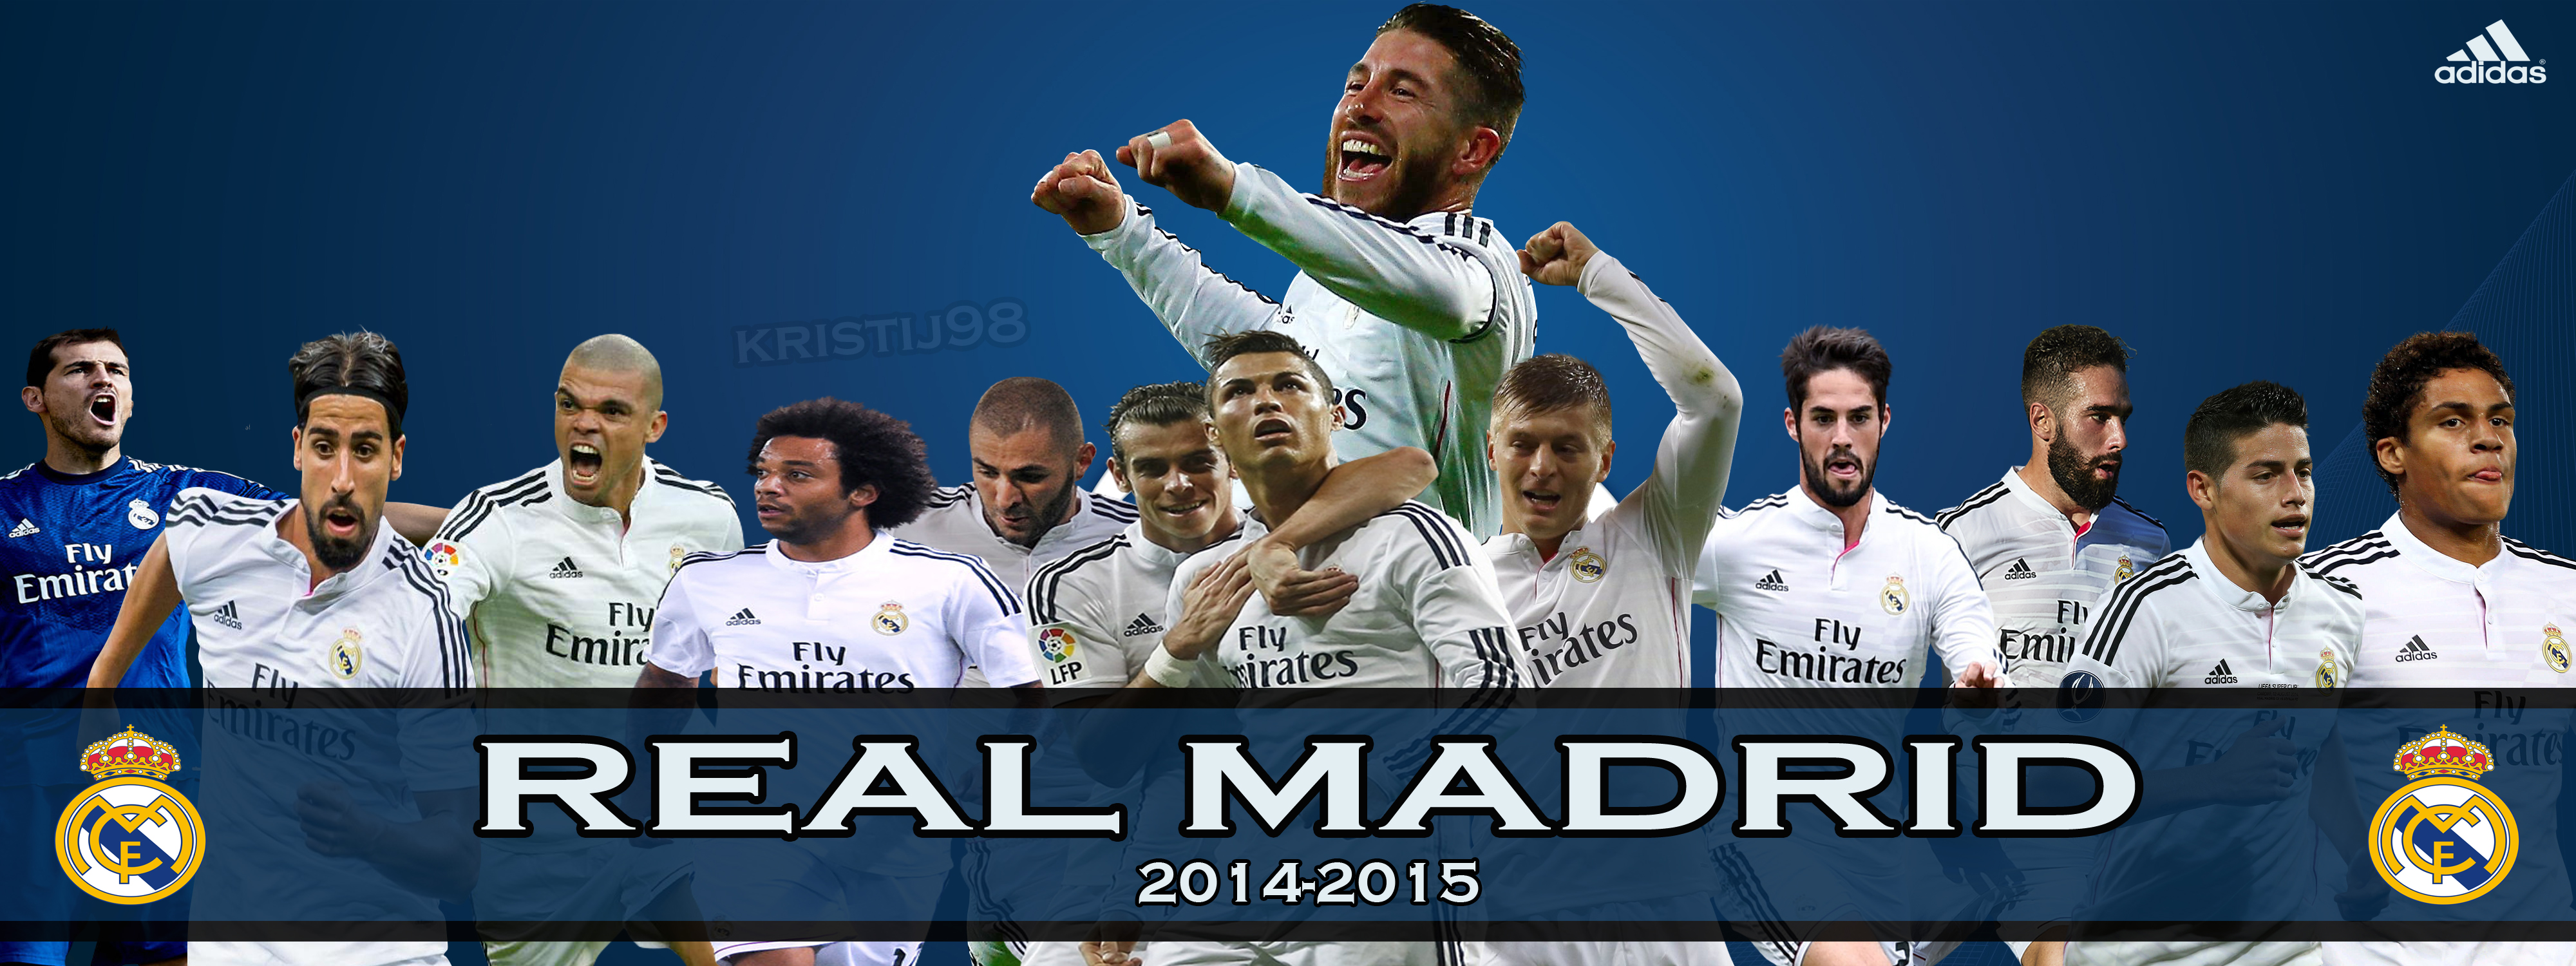 4000x1500 - Real Madrid Castilla Wallpapers 7